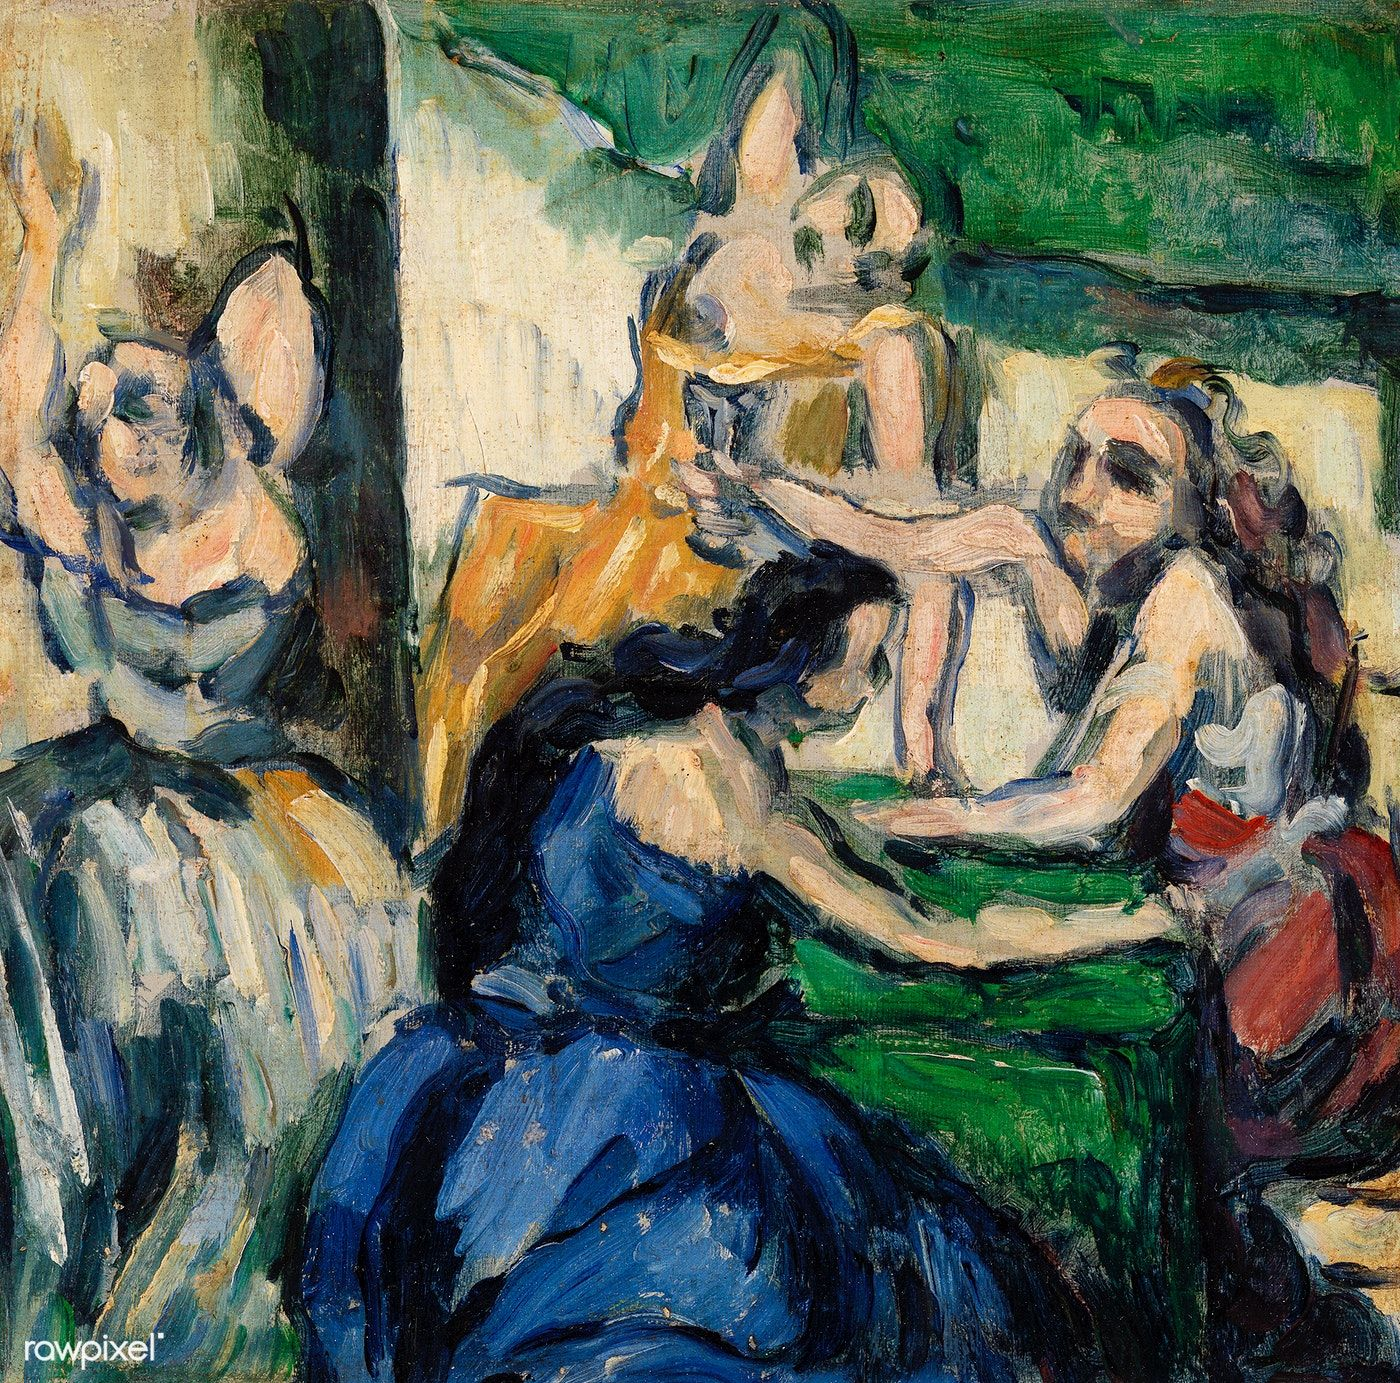 The Courtesans Les Courtisanes Ca 1867 Ndash 1868 By Paul C Eacute Zanne Original From Original From Barn Paul Cezanne Cezanne Art Paul Cezanne Paintings